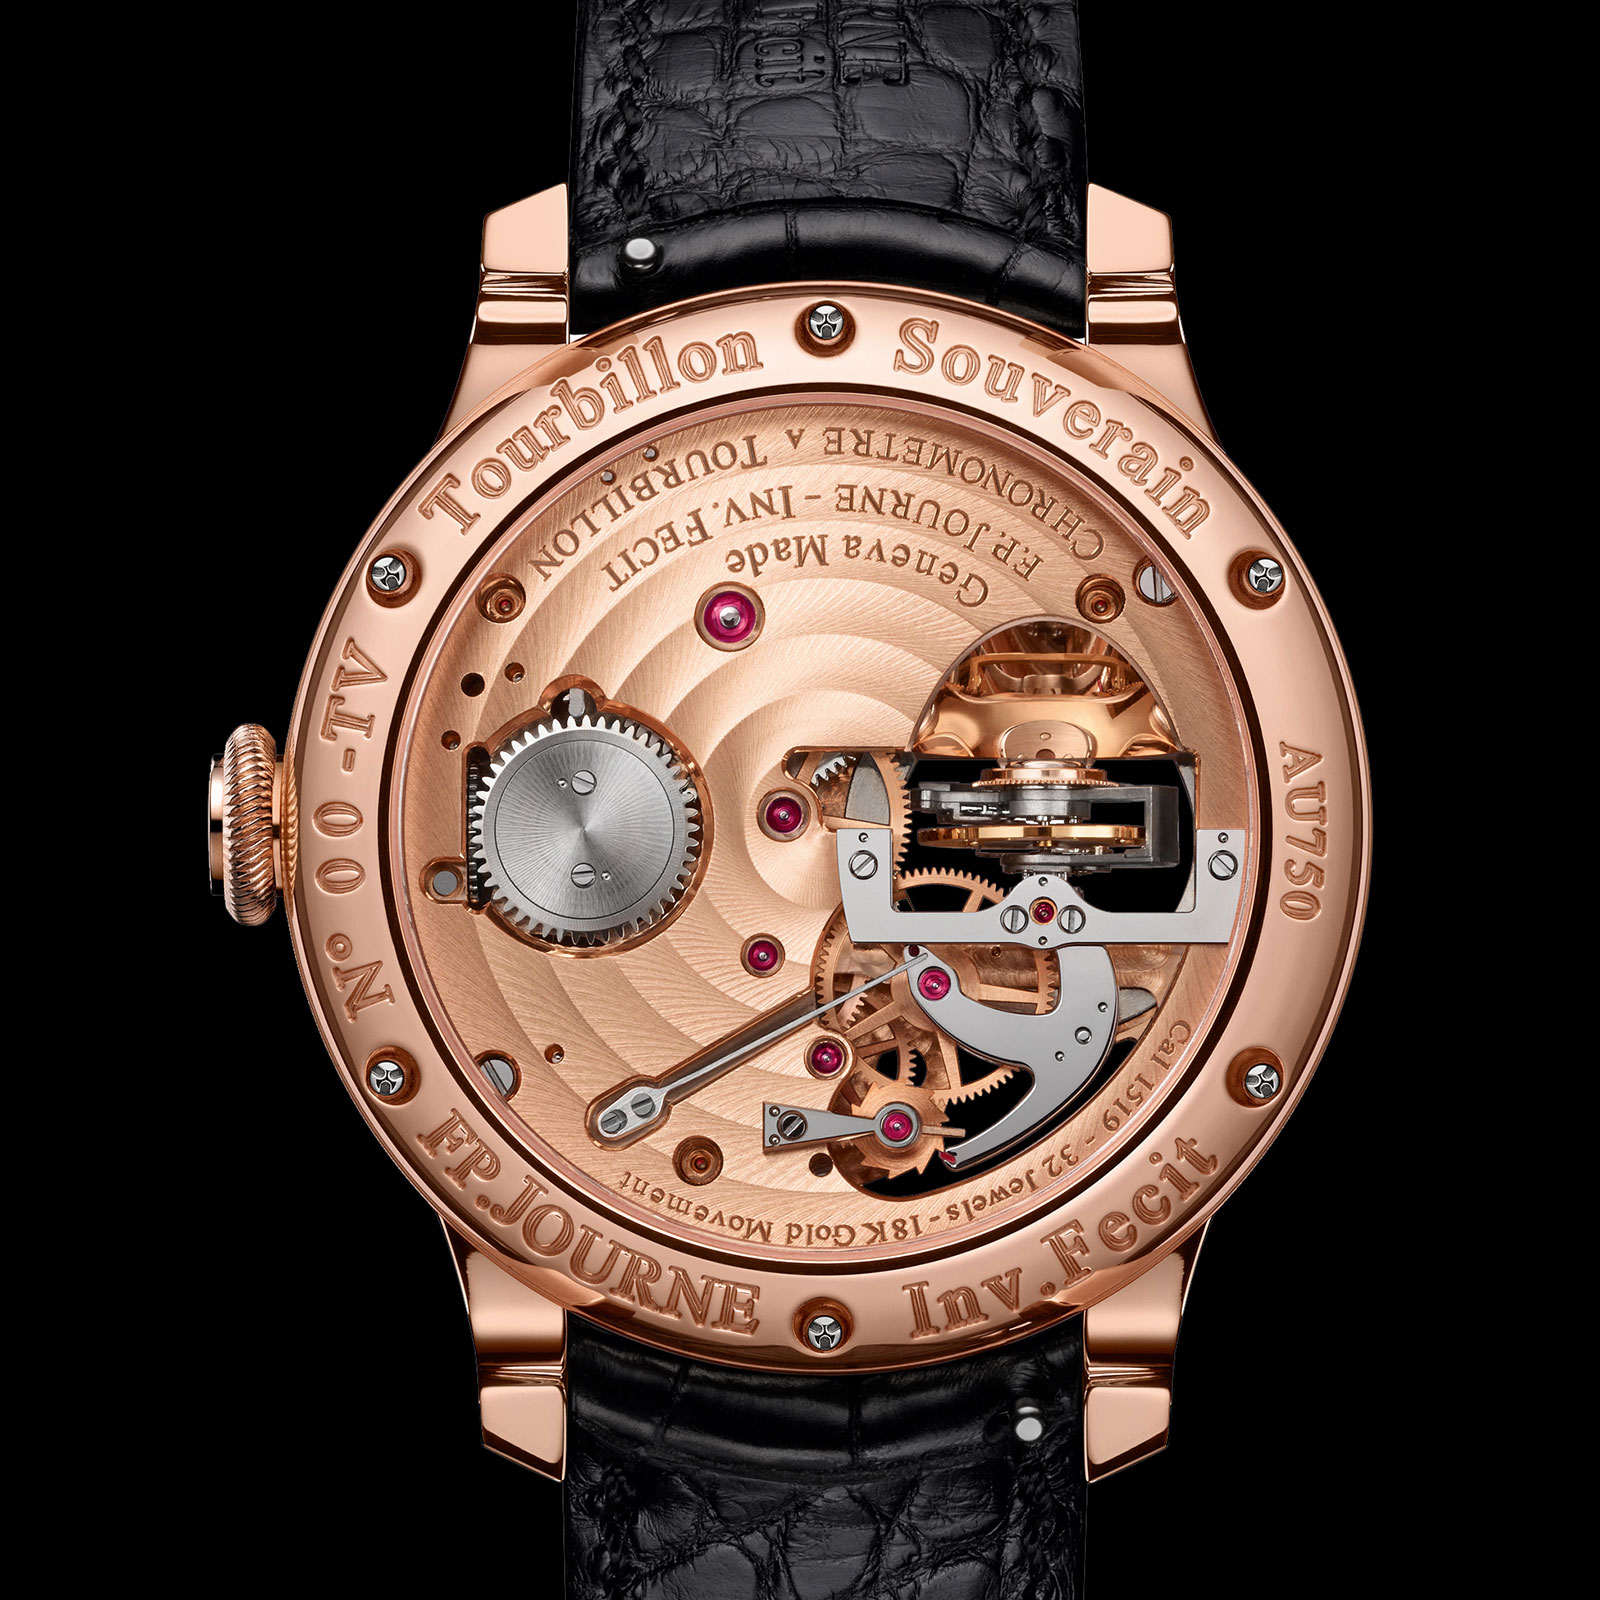 FP Journe Tourbillon Souverain Vertical 2